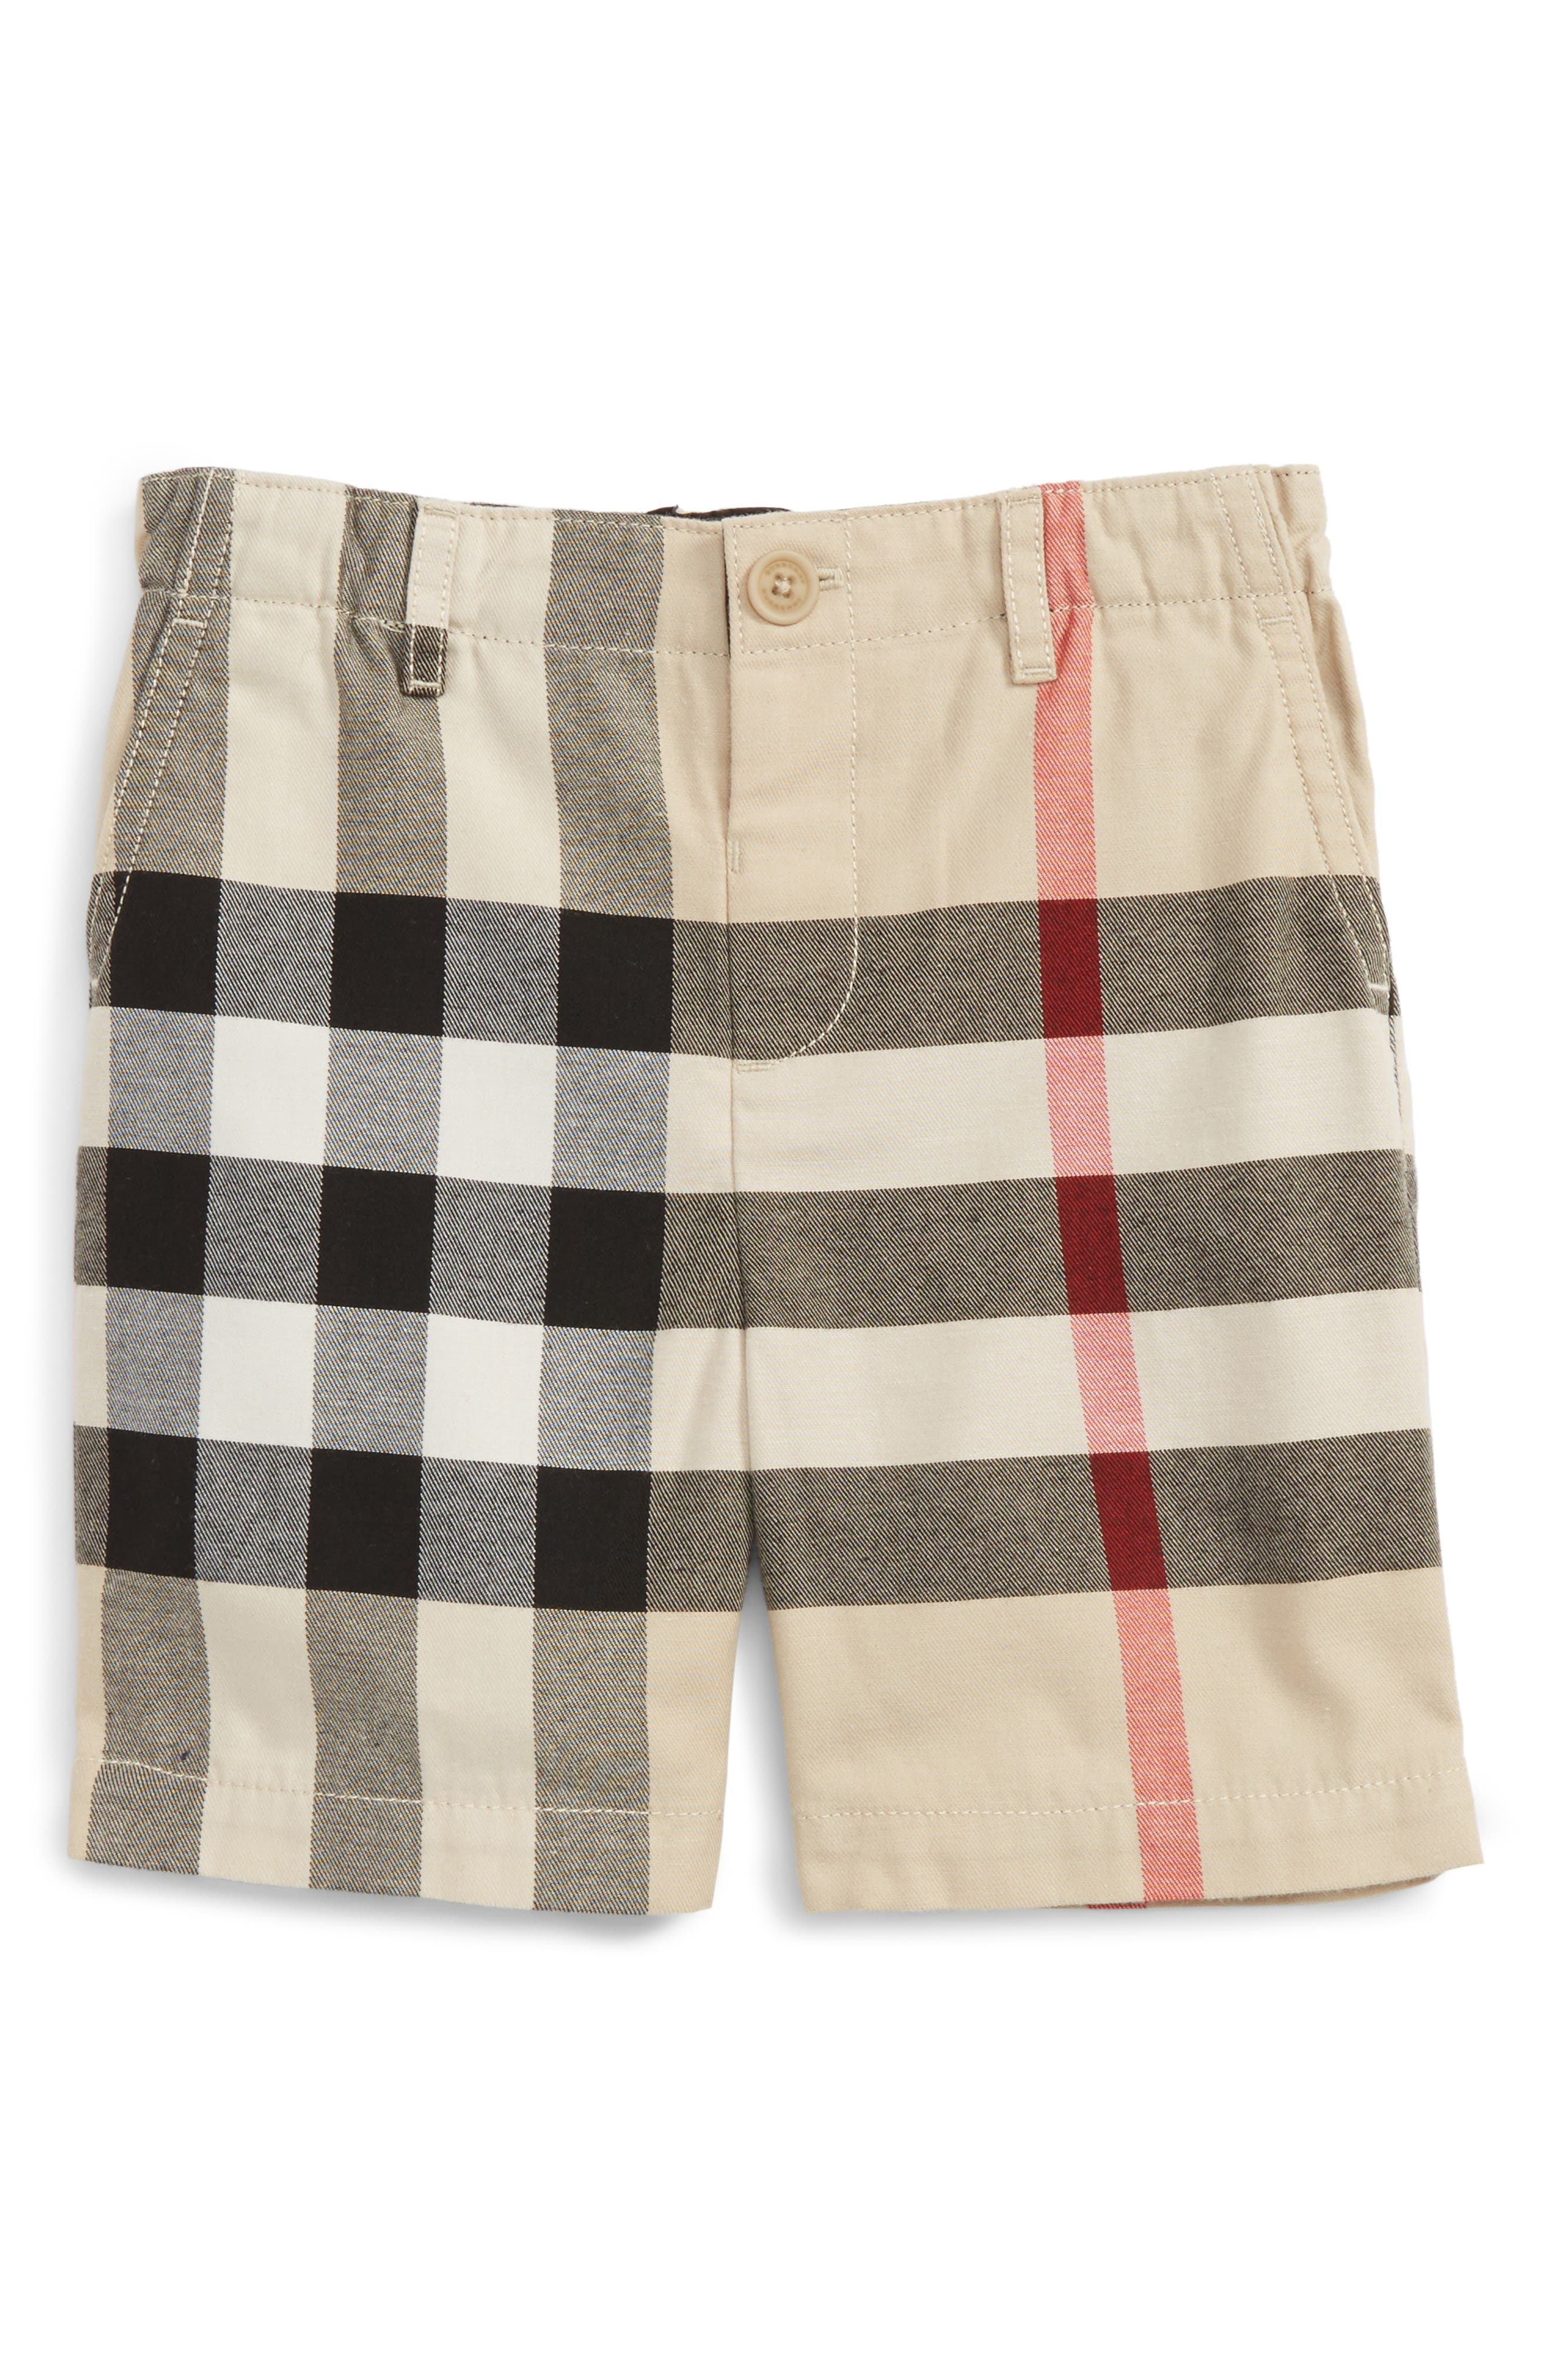 Alternate Image 1 Selected - Burberry Sean Check Print Shorts (Baby Boys)